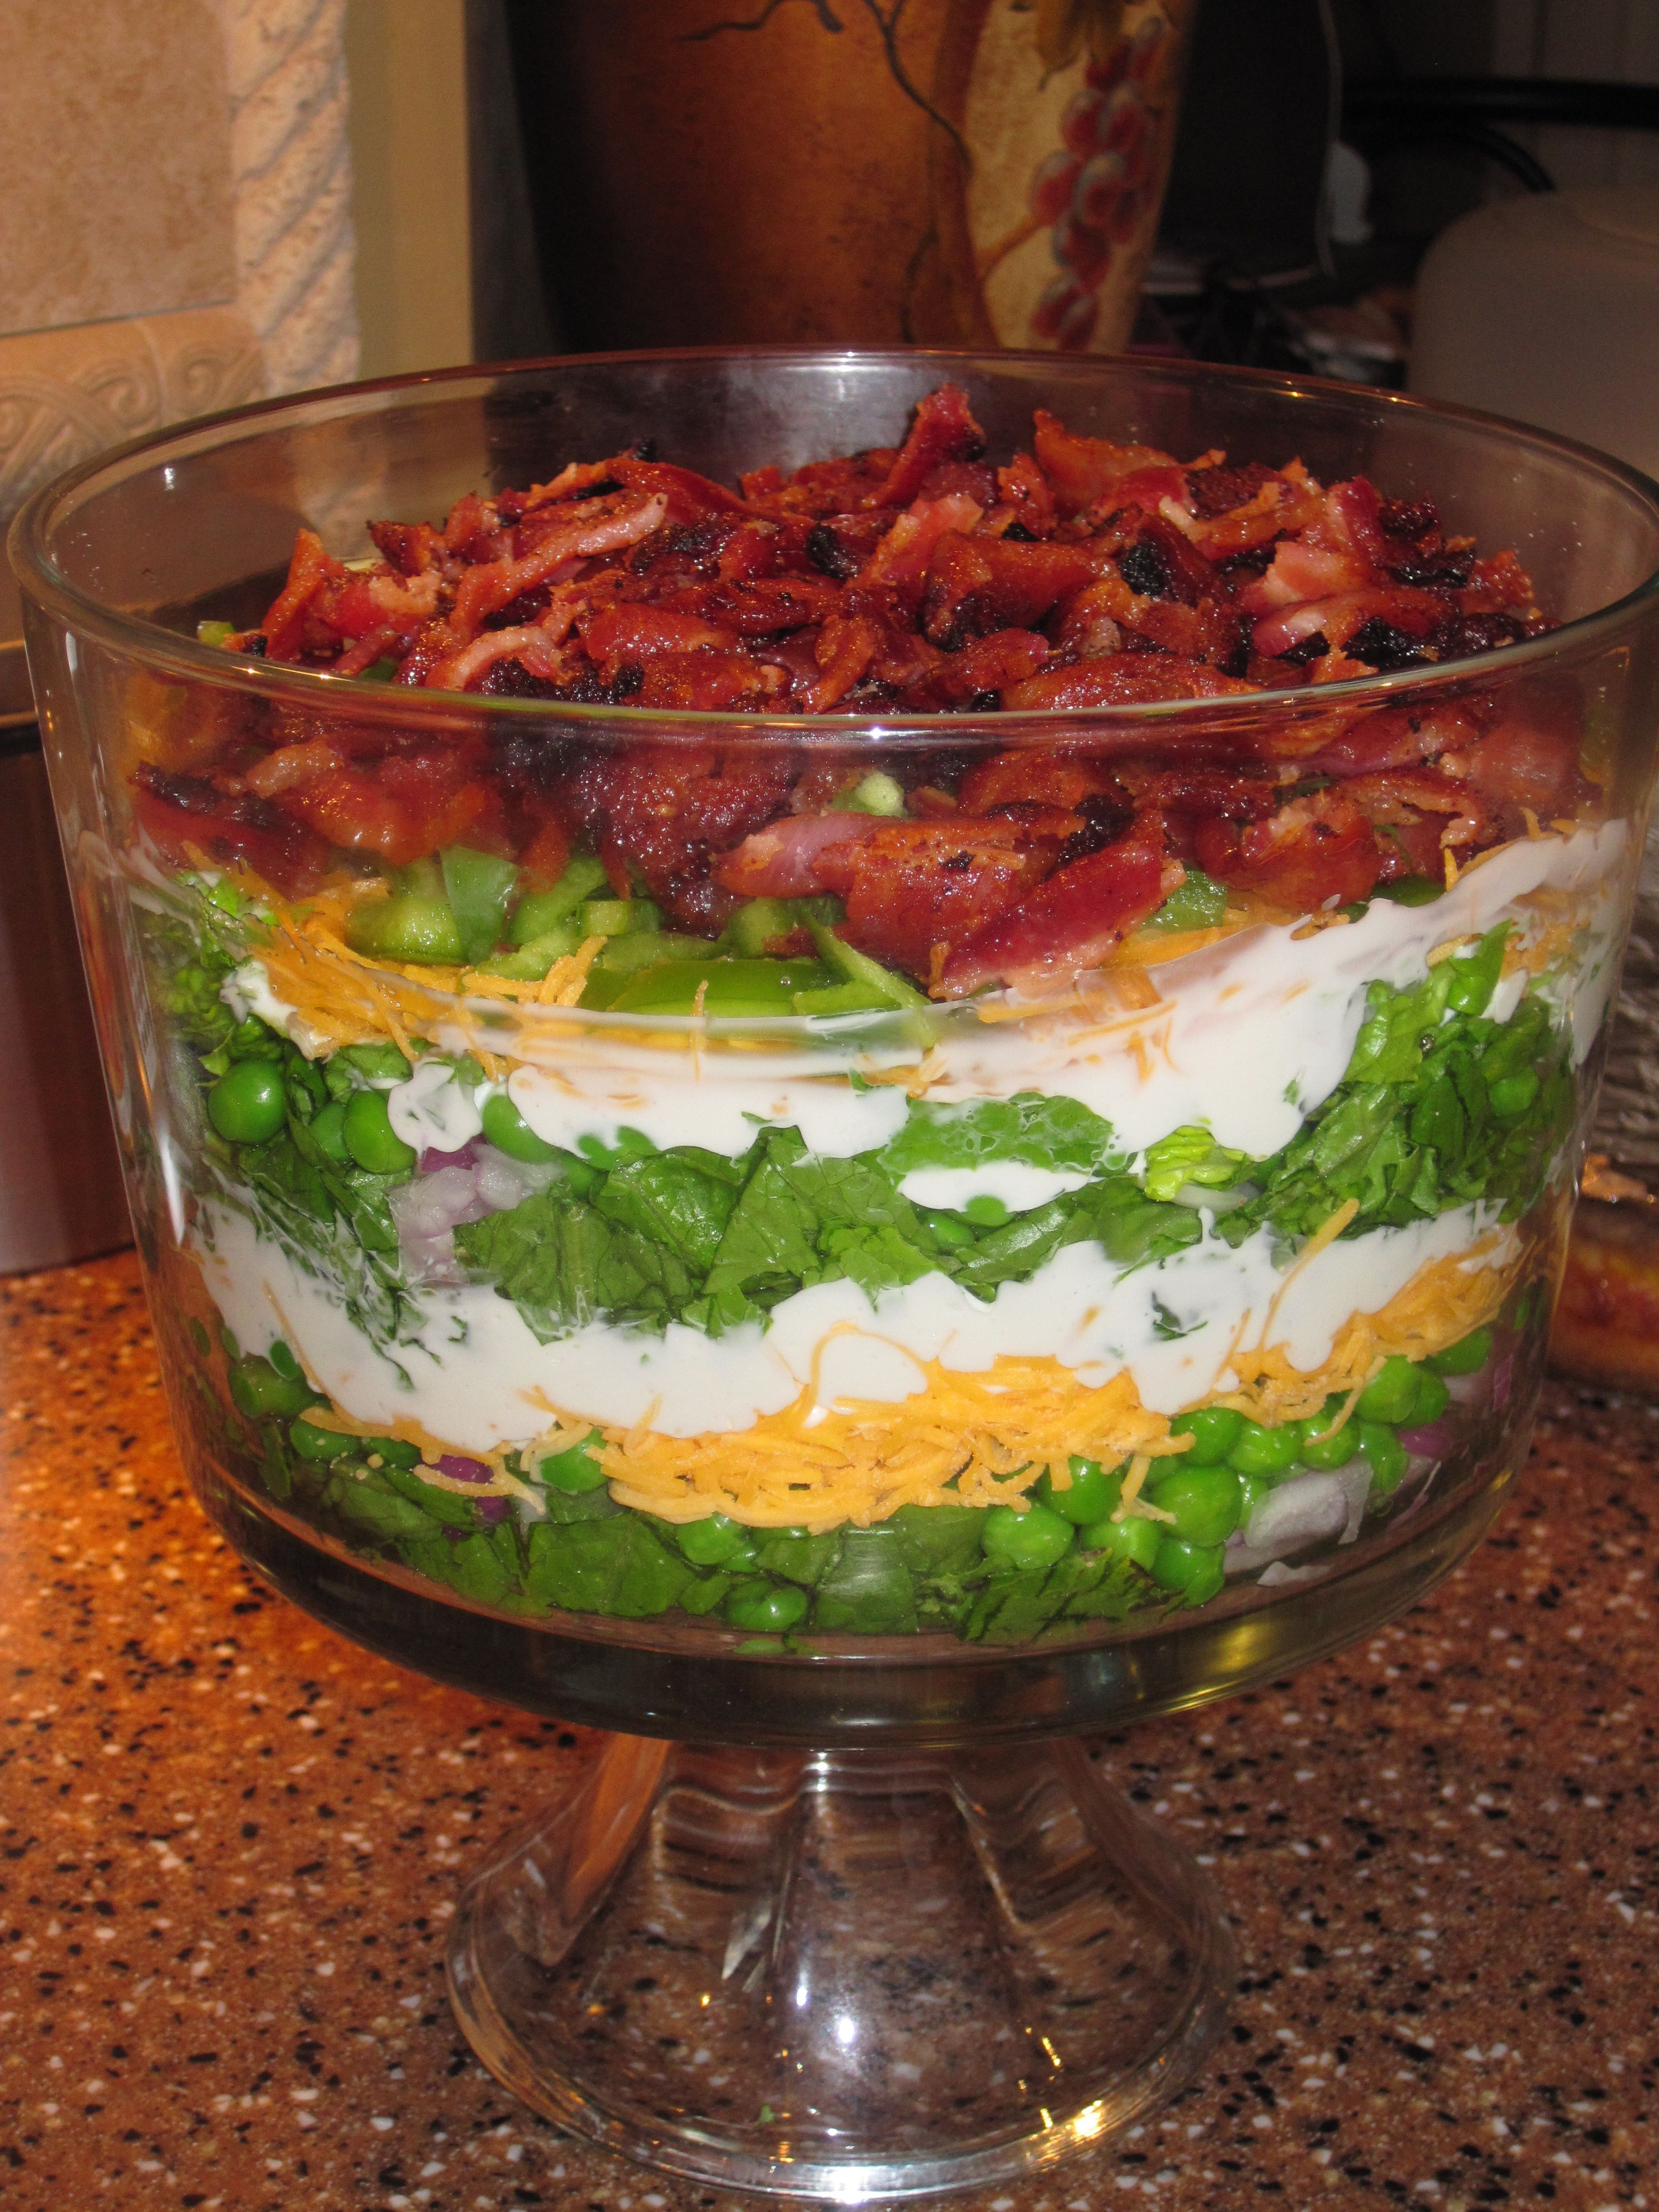 7 Layer Salad Green Lettuce Peas Celery Cucumber Bacon Sharp Cheddar For The Dressing Mix Ma Healthy Snacks Recipes Layered Salad Recipes Layered Salad